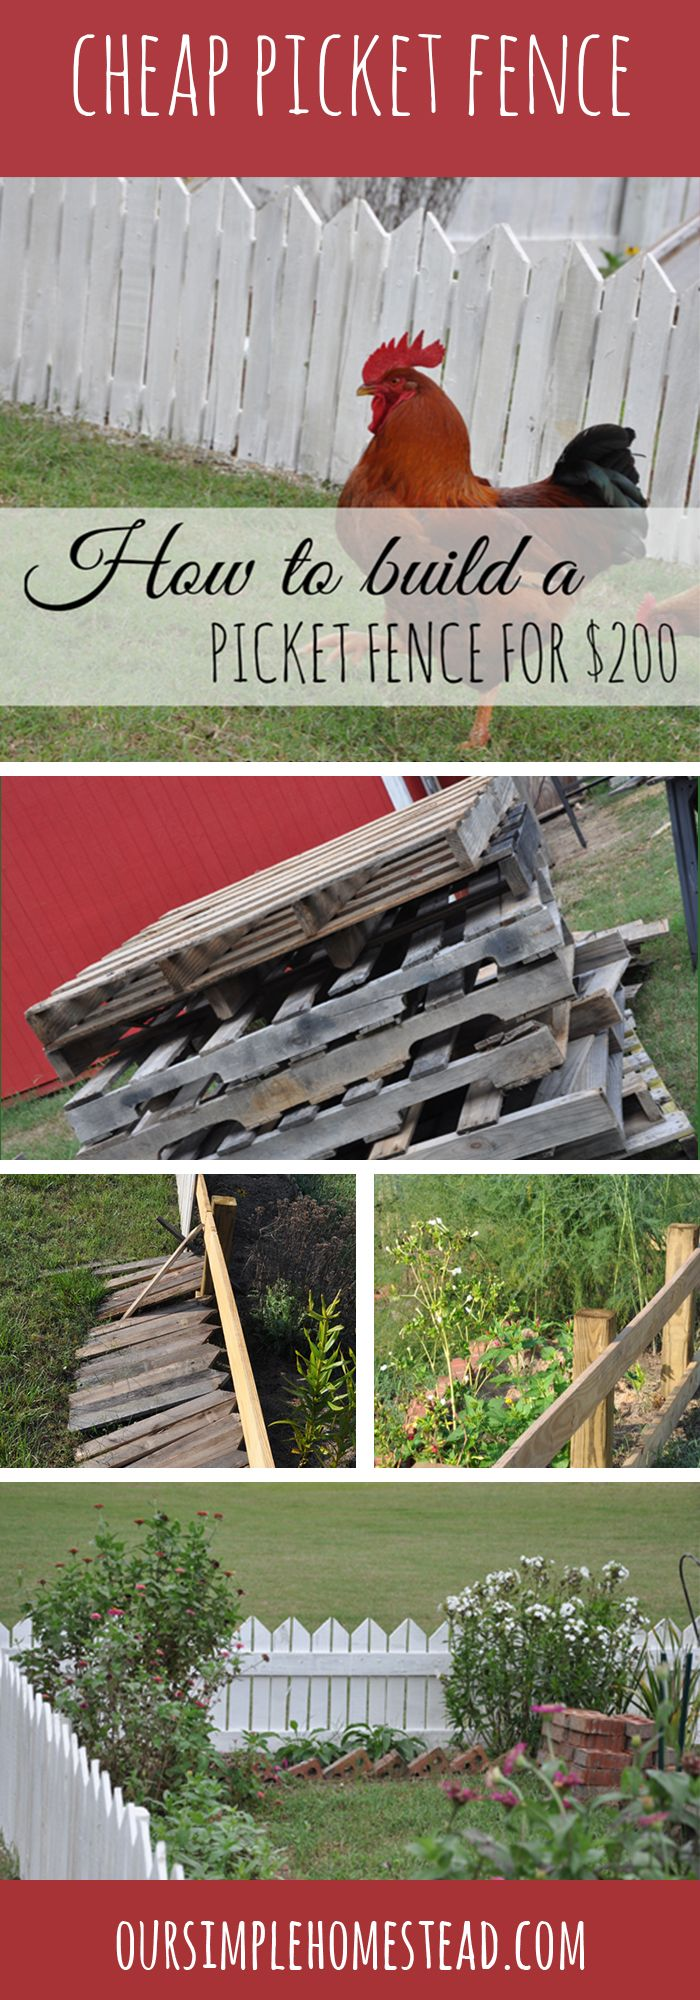 How to Build a Cheap Picket Fence for $200 - This month's project was to build a cheap wood picket fence around the kitchen garden. We hope to keep the chickens from using it as their personal space, plus add a pretty visual to my favorite garden.